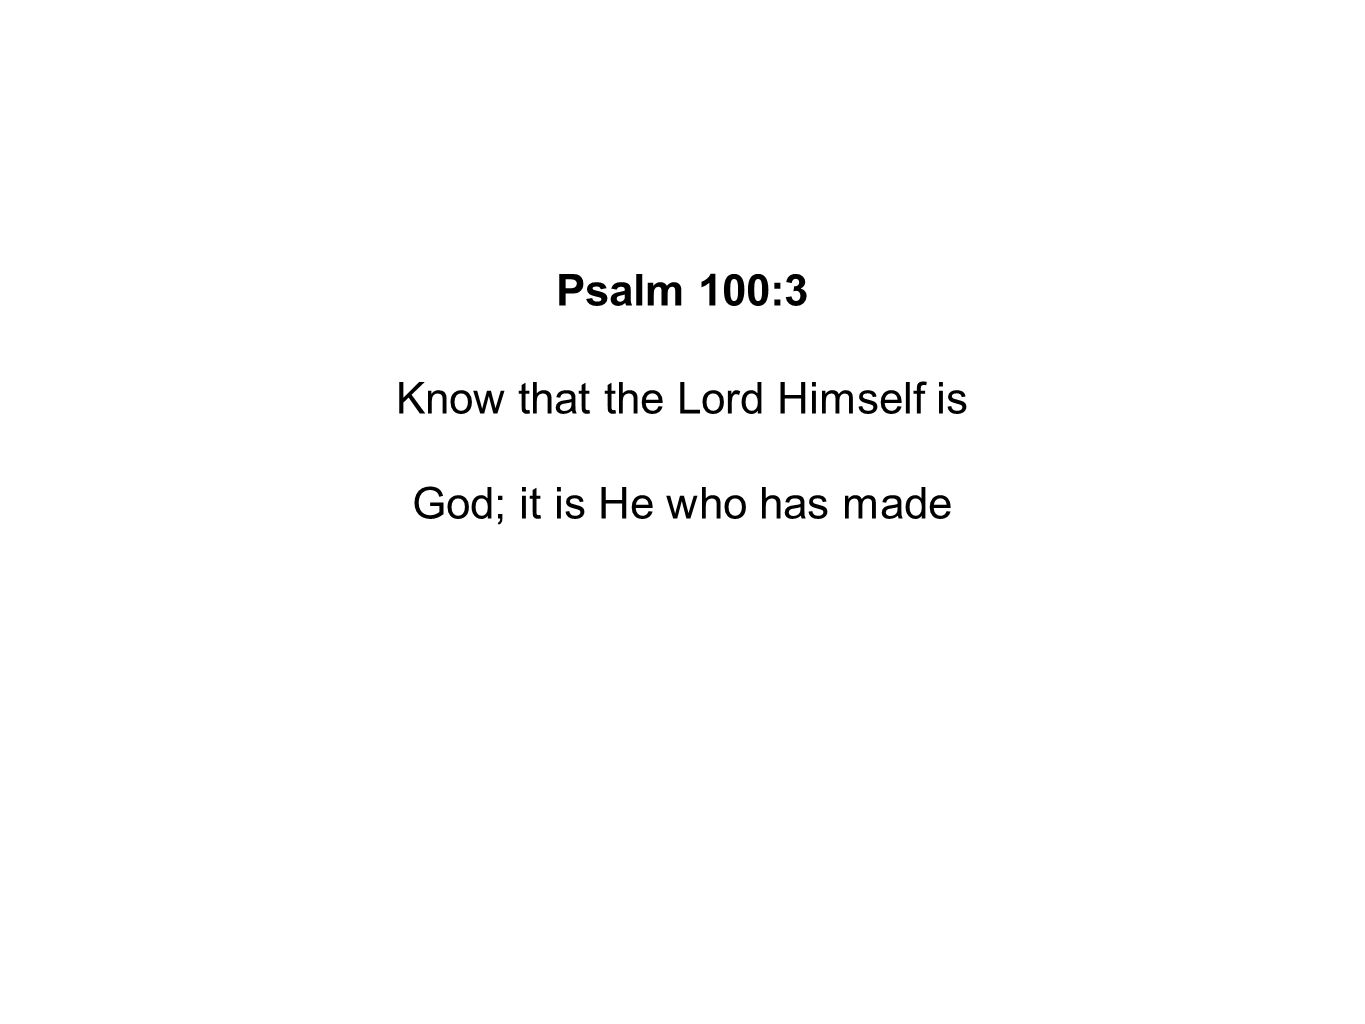 Psalm 100:3 Know that the Lord Himself is God; it is He who has made